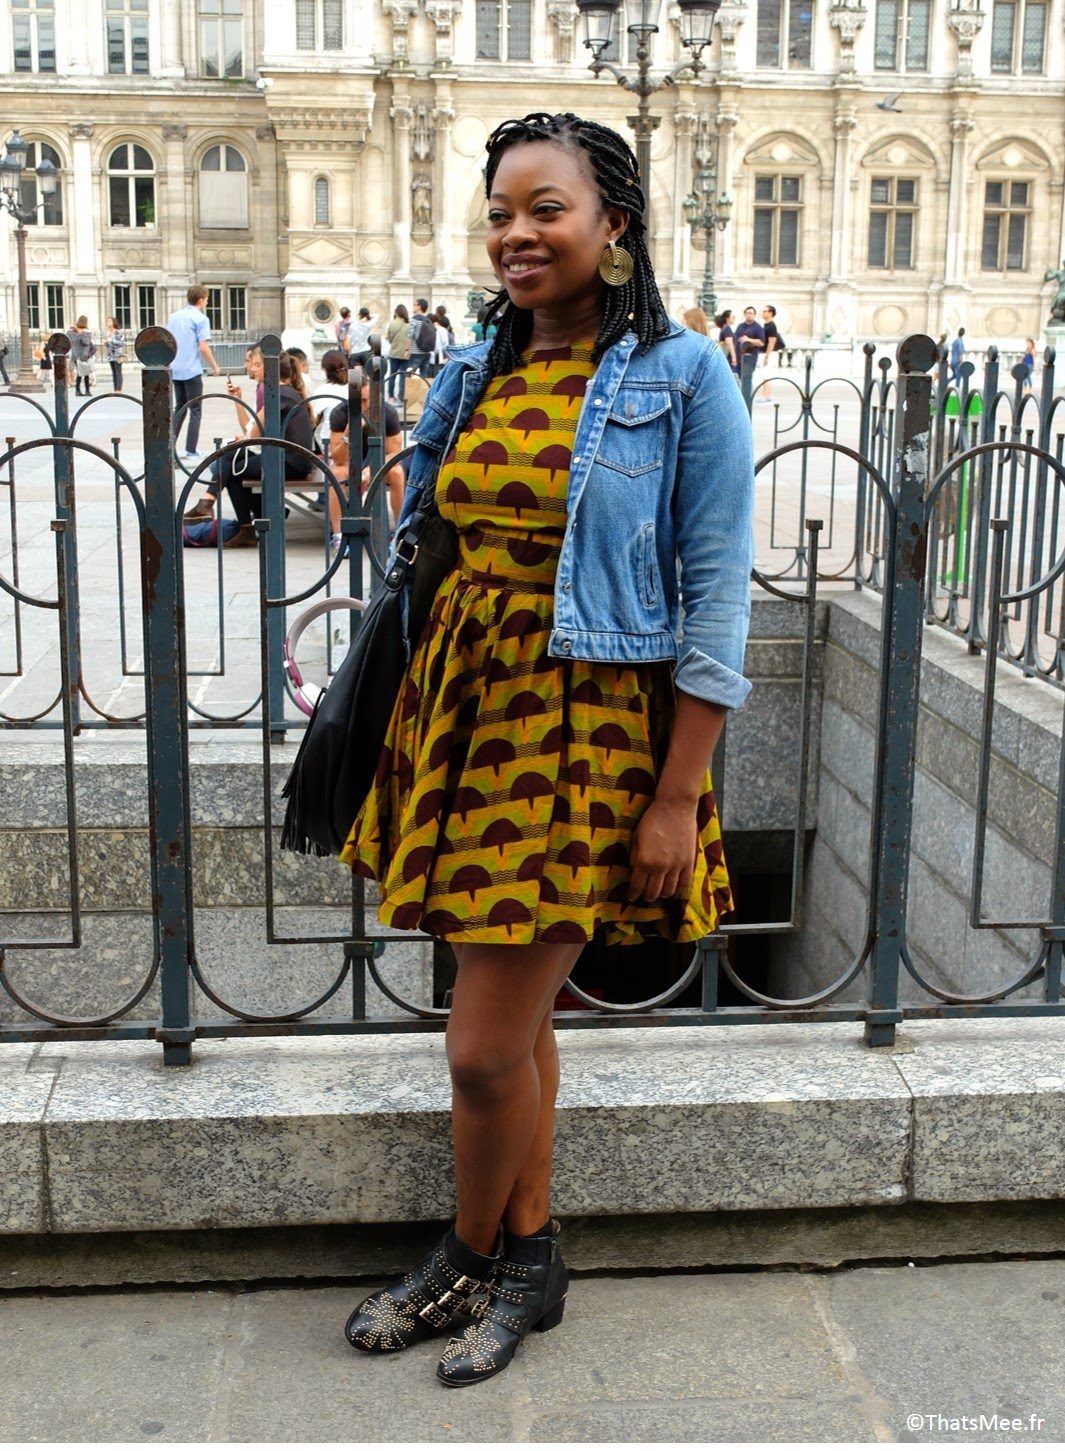 style de la semaine ootd modern african queen ThatsMee.fr, sac André franges, boots Choies Chloé, robe homemade cousue wax tissu africain